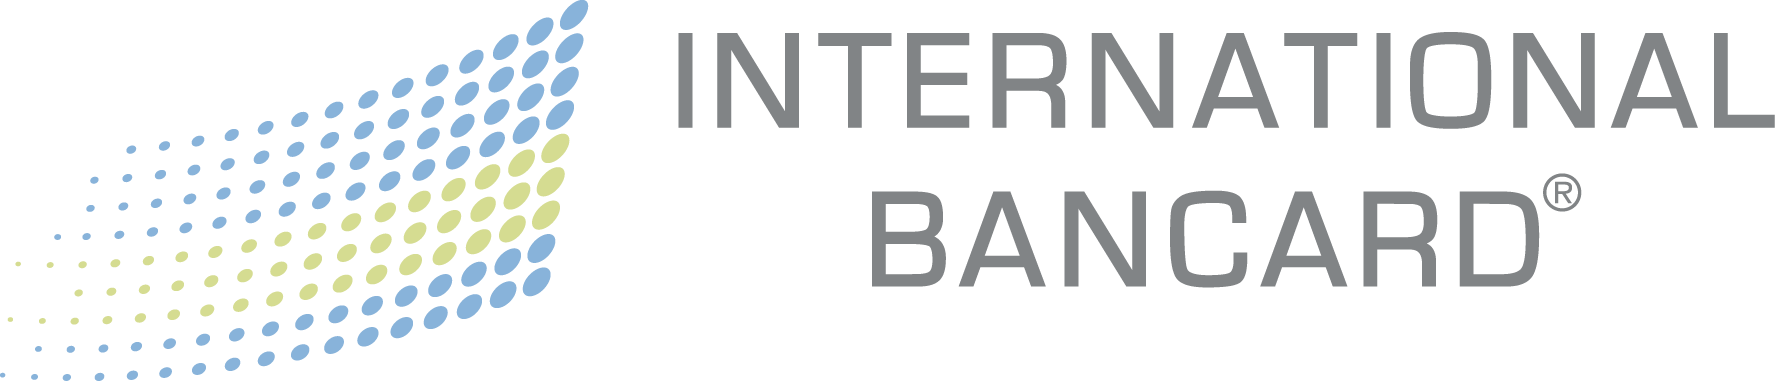 International_bancard_8.4.15.png